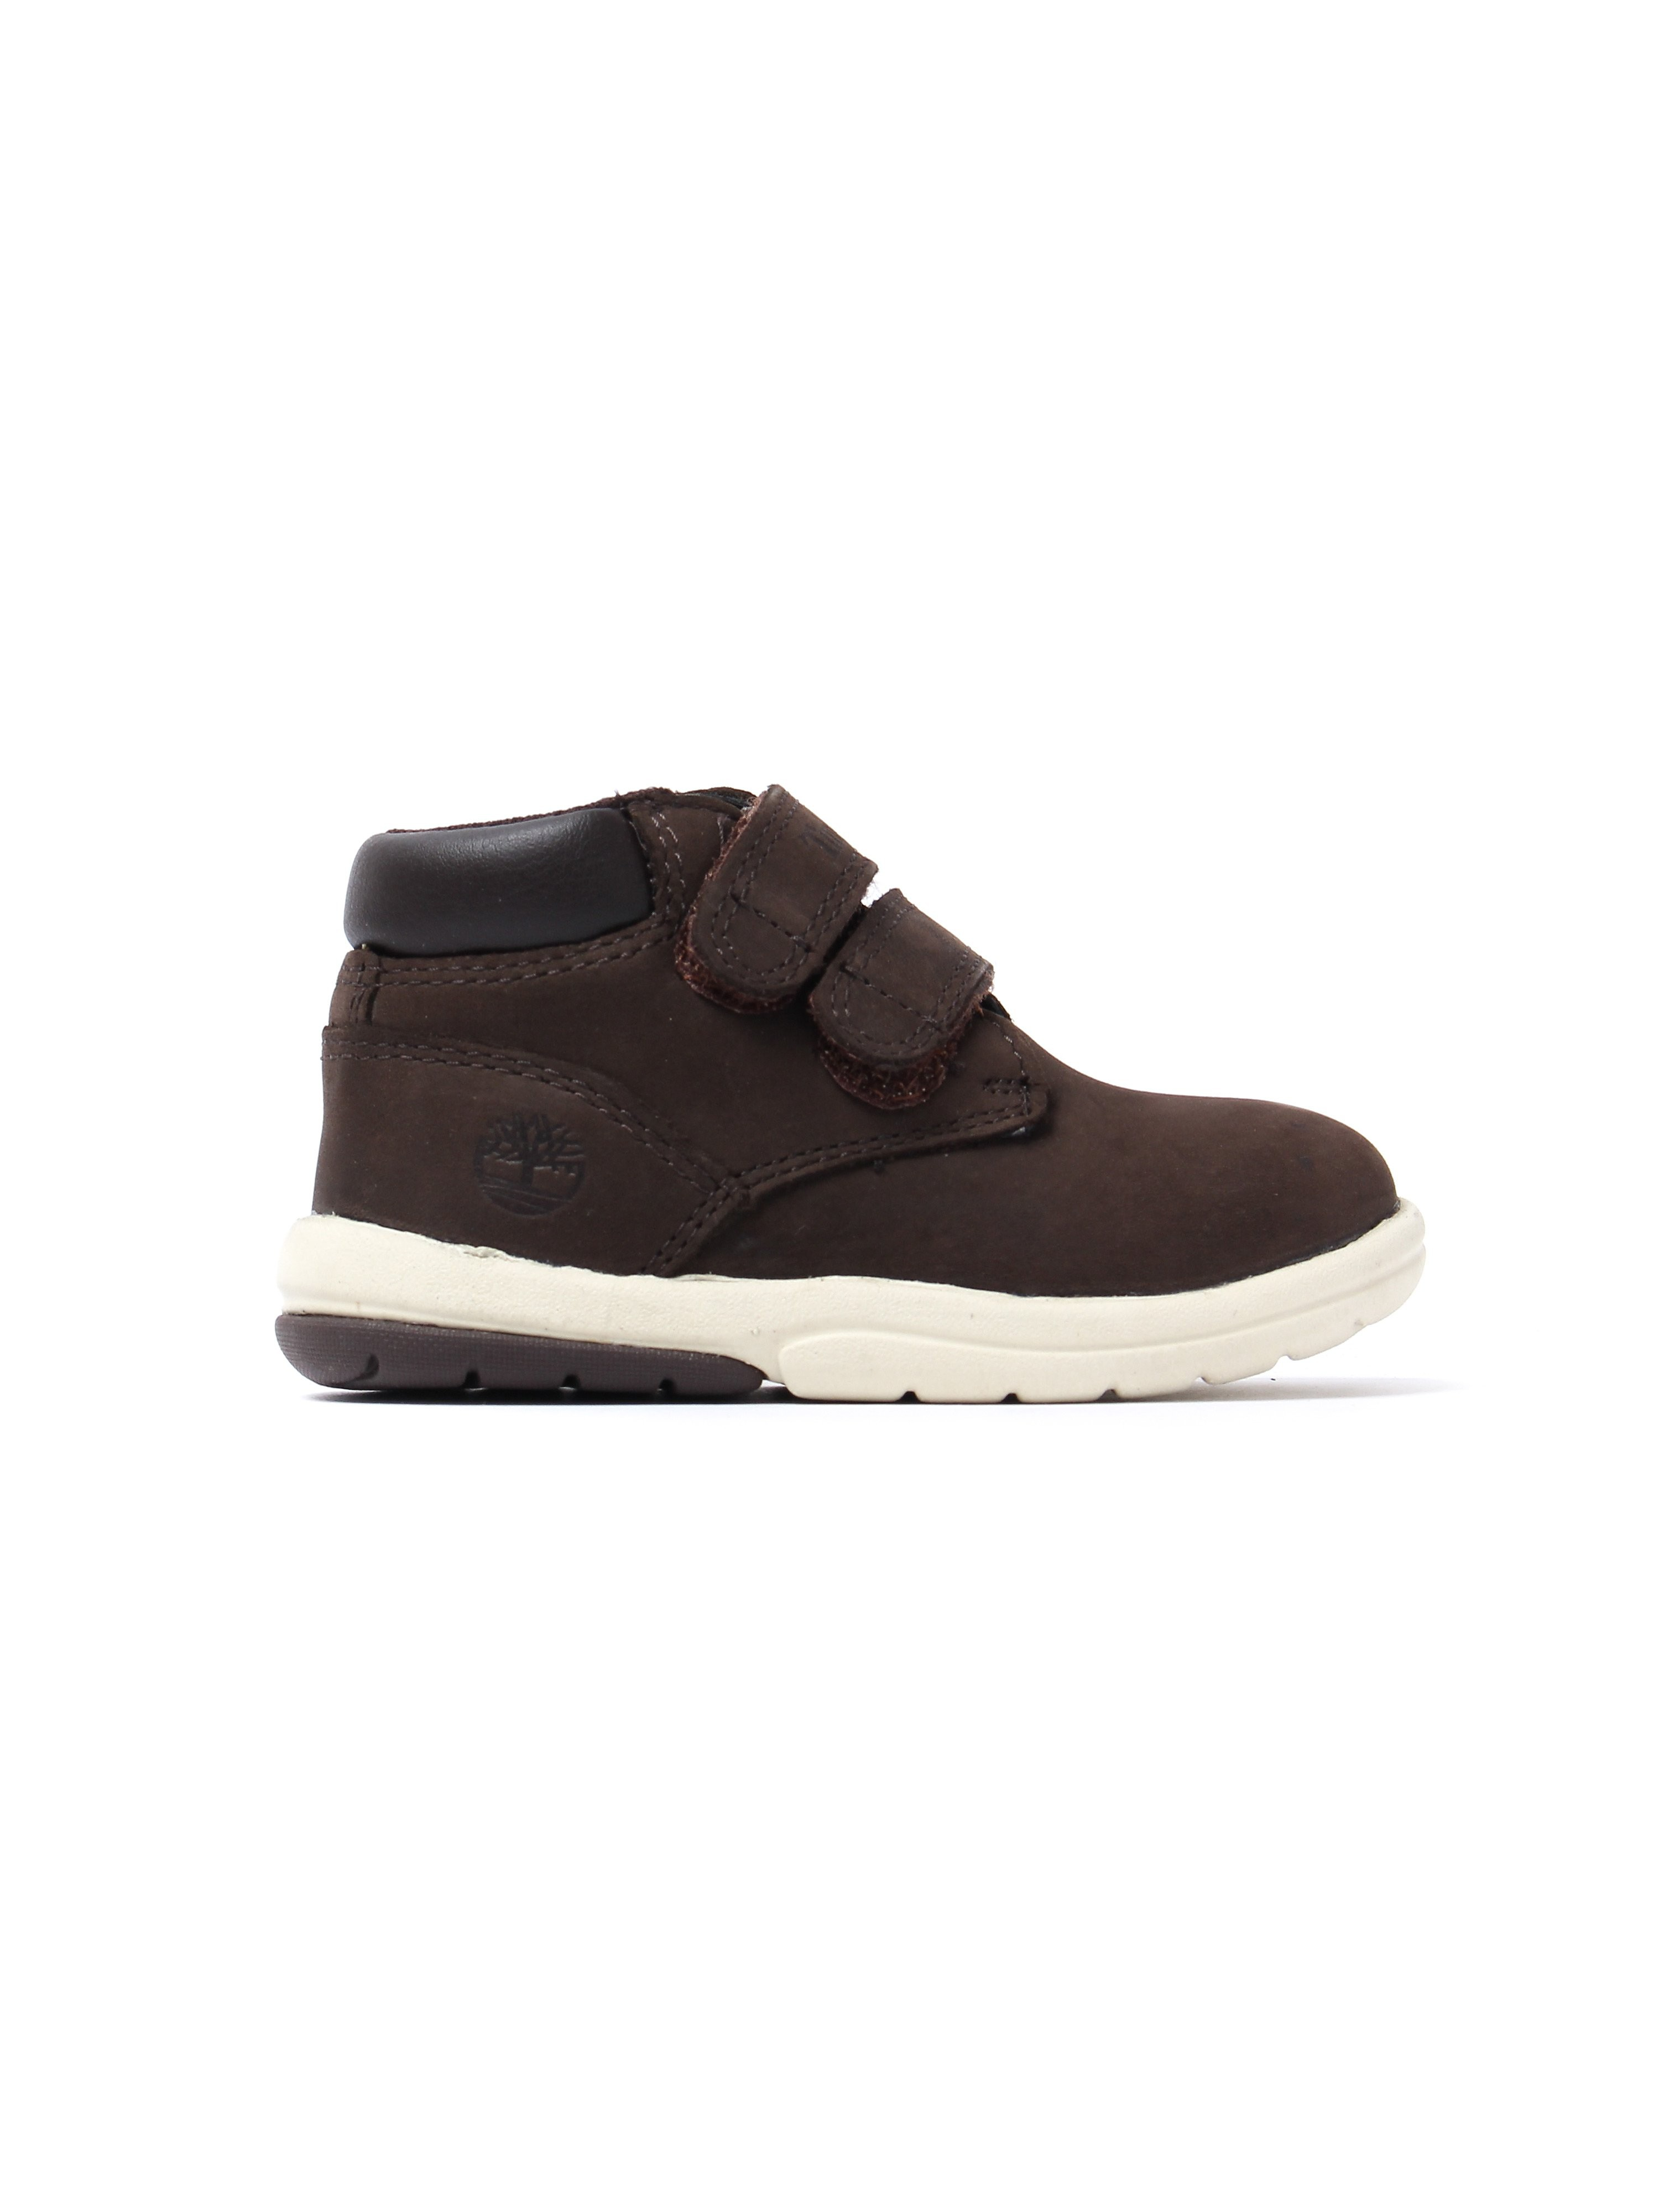 Timberland Infant New Toddle Tracks Boots - Brown Nubuck